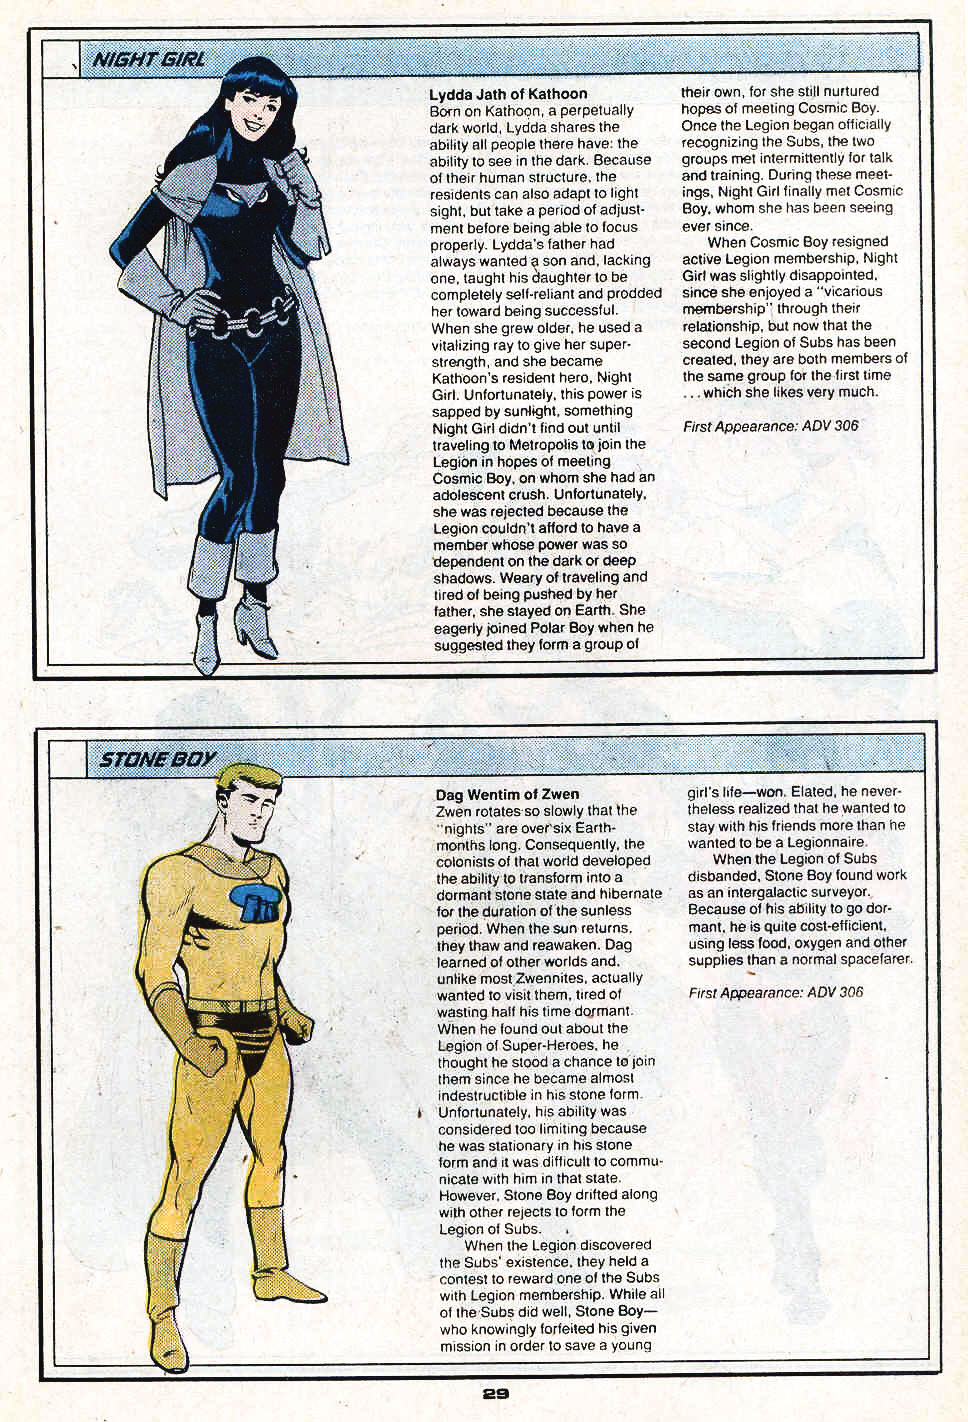 Night Girl and Stone Boy by Ty Templeton - Who's Who in the Legion of Super-Heroes #3